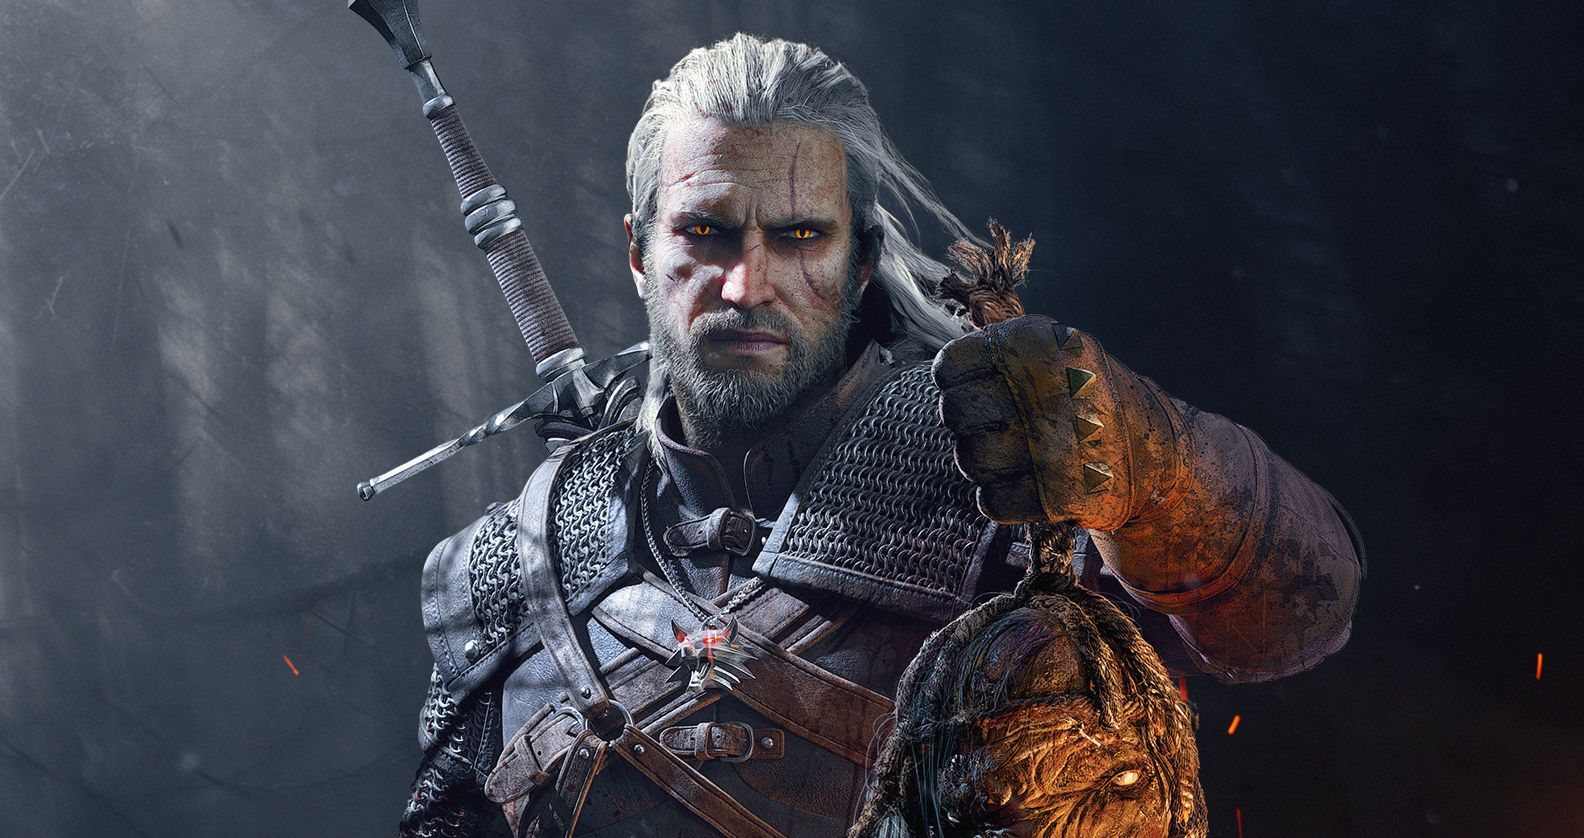 the witcher-witcher 4-geralt-Henry Cavill-witcher 3-consolland